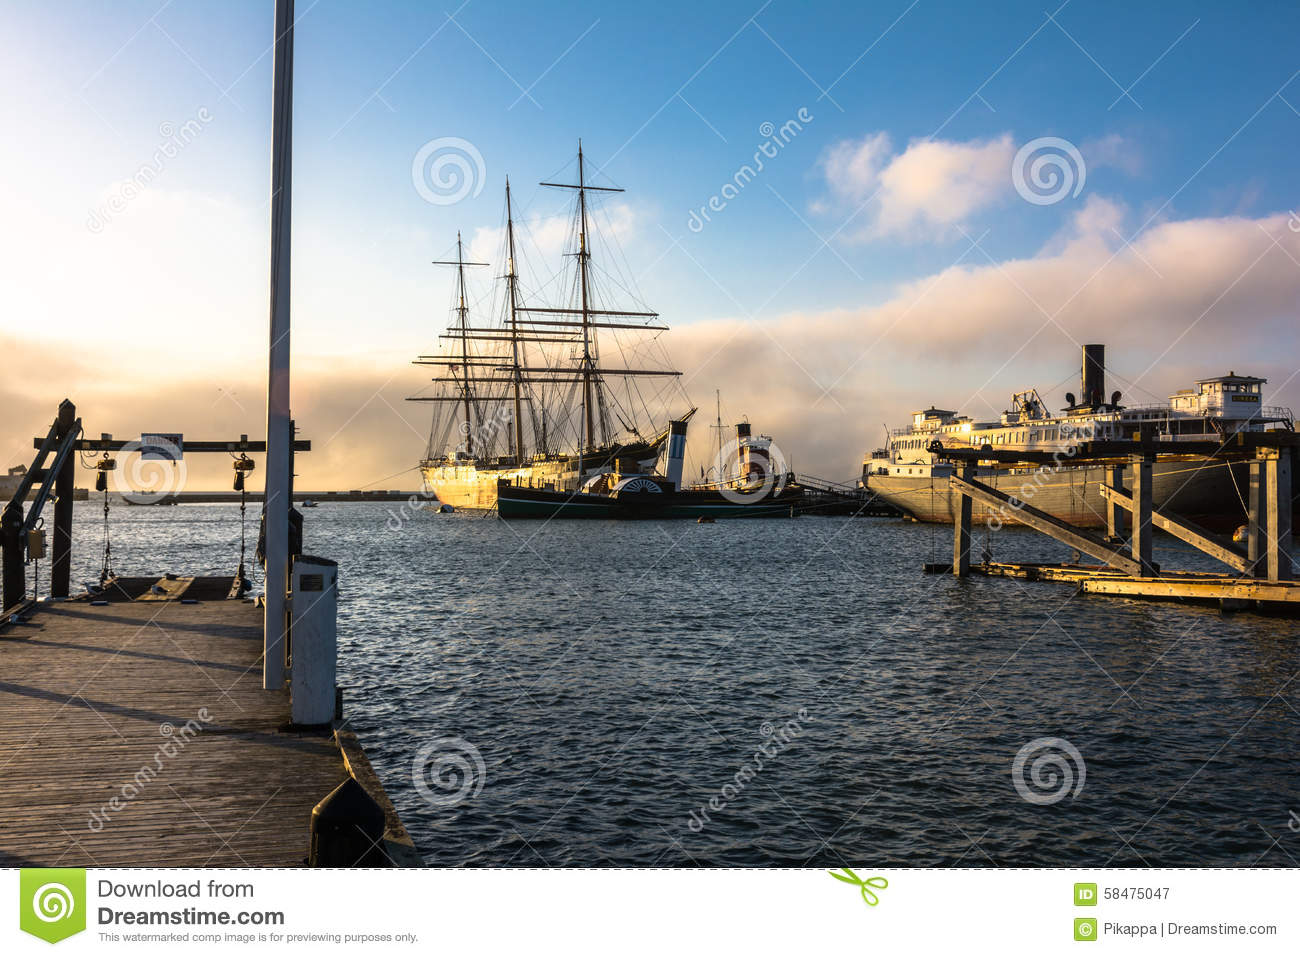 alte schiffe im hafen bei sonnenuntergang san francisco redaktionelles stockfotografie bild. Black Bedroom Furniture Sets. Home Design Ideas